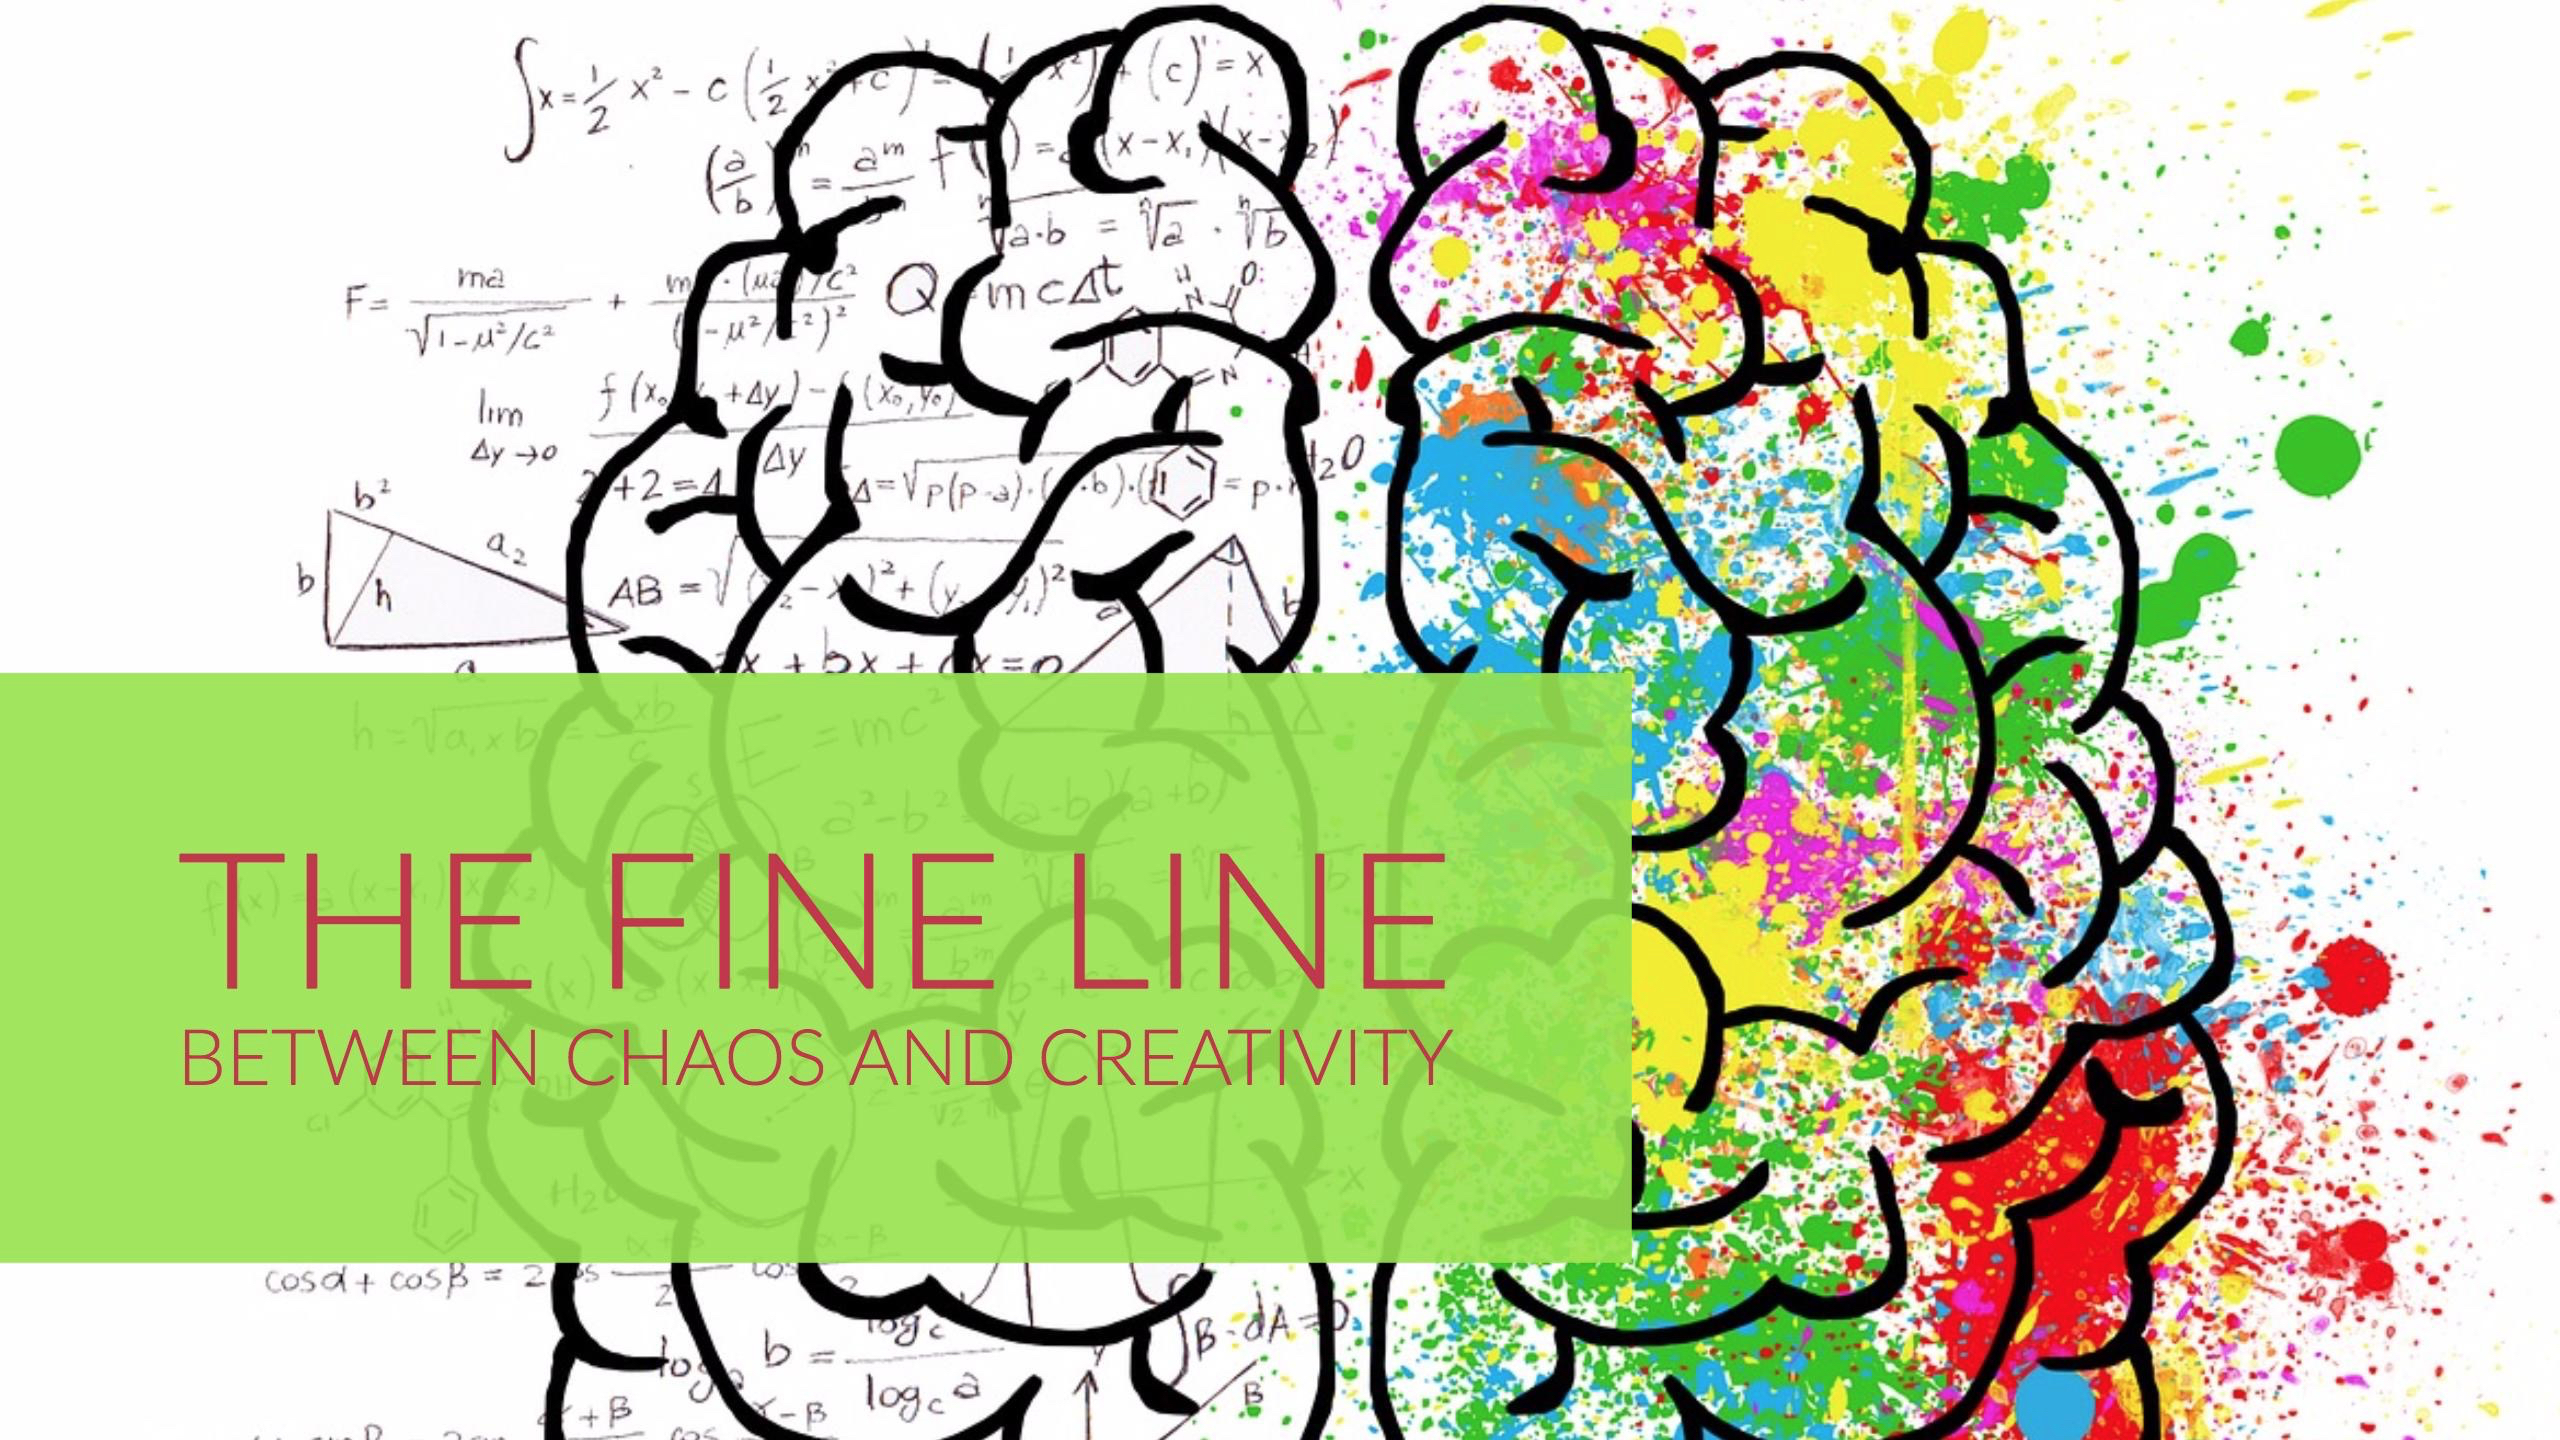 THE FINE LINE BETWEEN CHAOS AND CREATIVITY